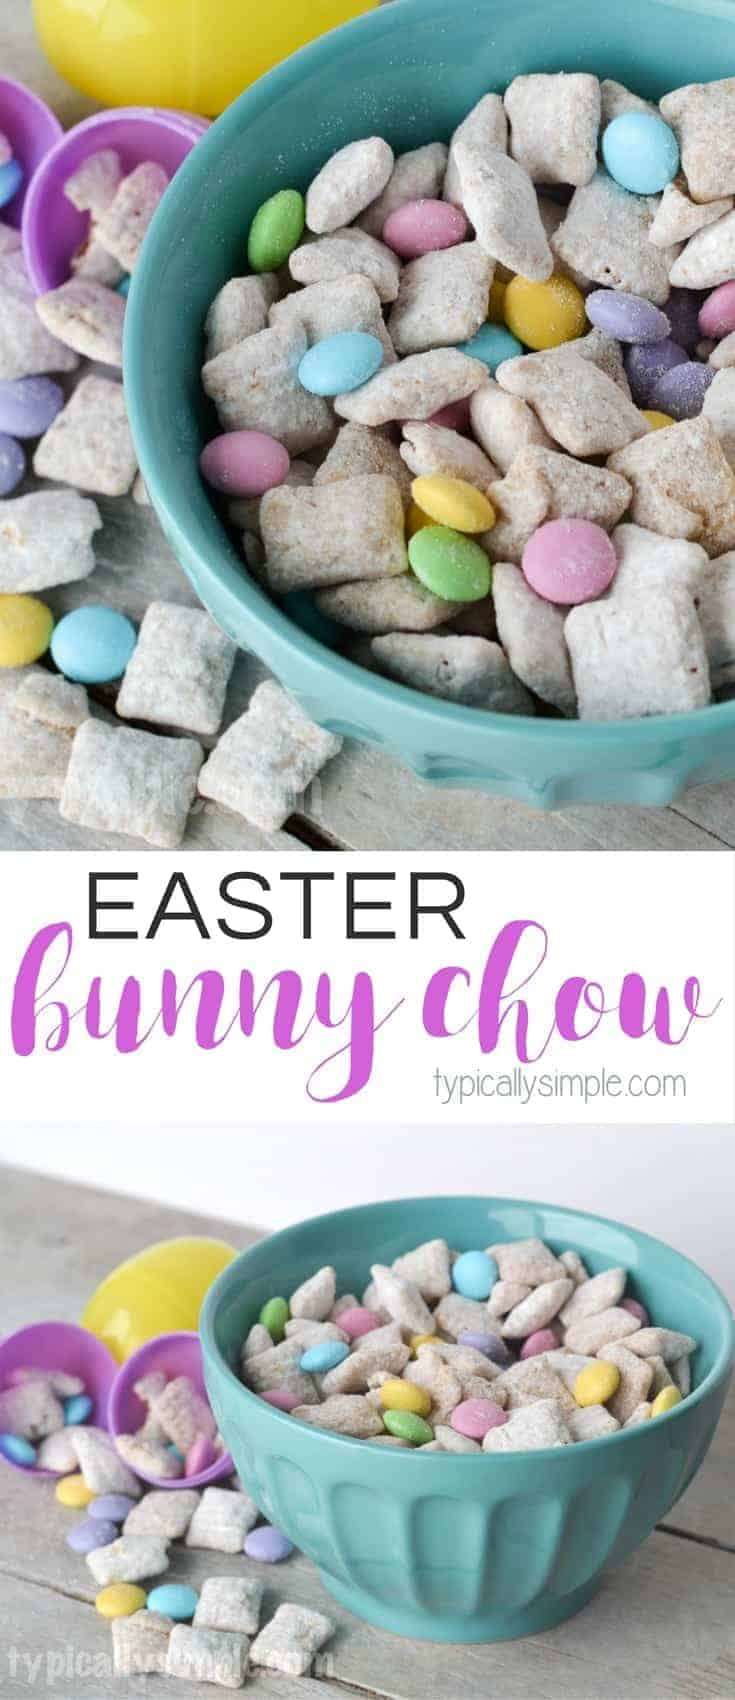 Easter Bunny Chow by Typically Simple and other amazing Chex Mix Recipes!